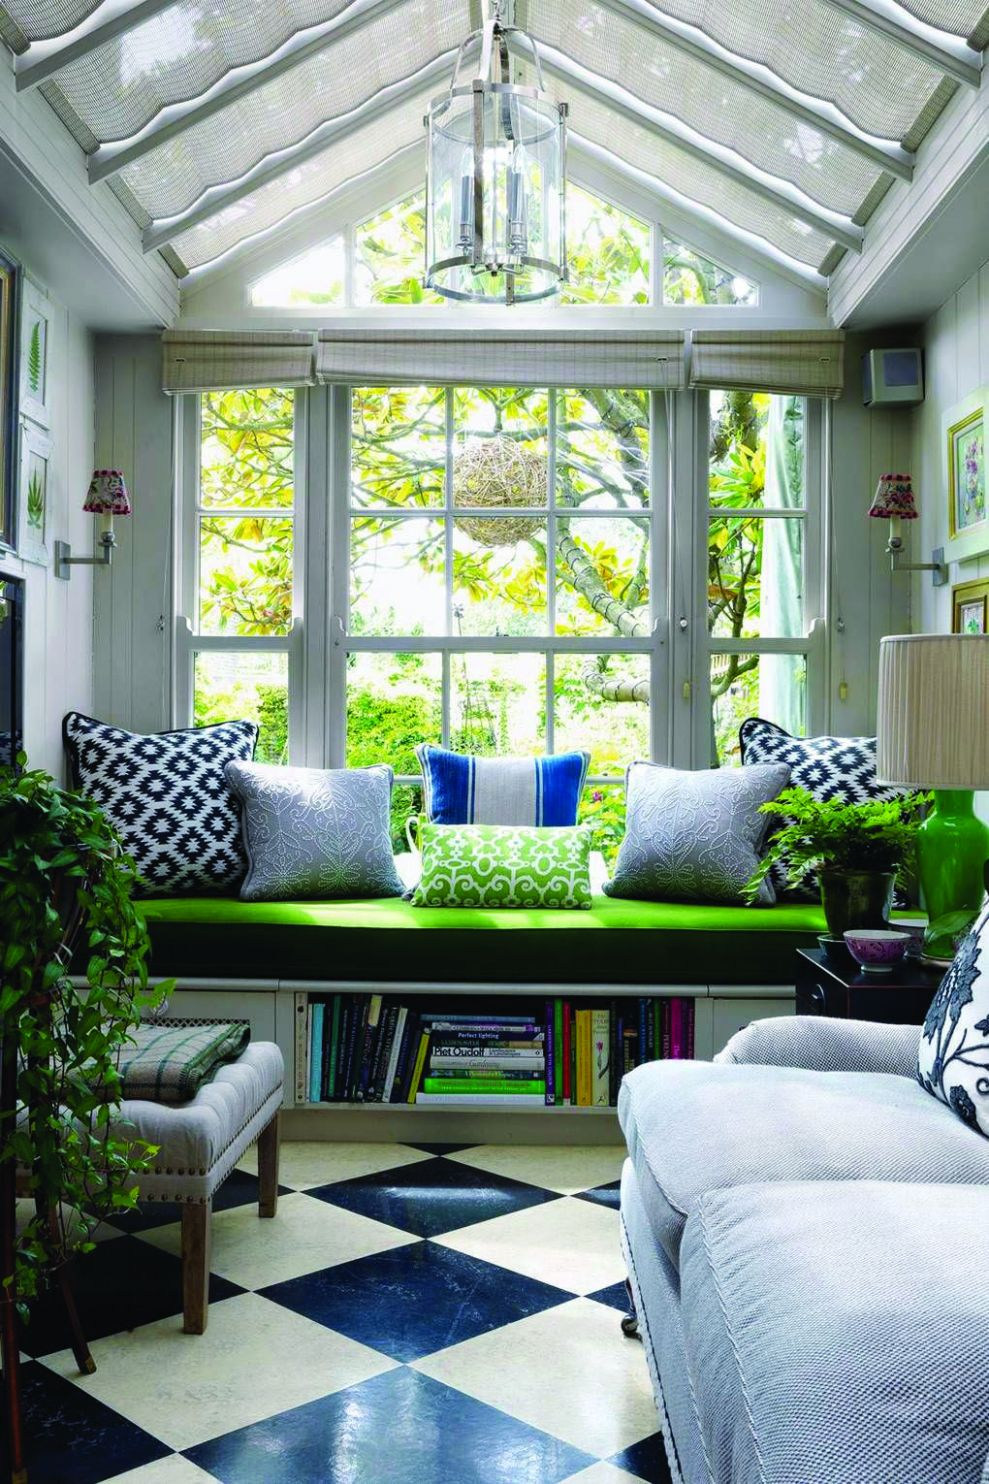 12 SUNROOM IDEAS FOR BLISSFUL LOUNGING | Decor, Interior deco ...